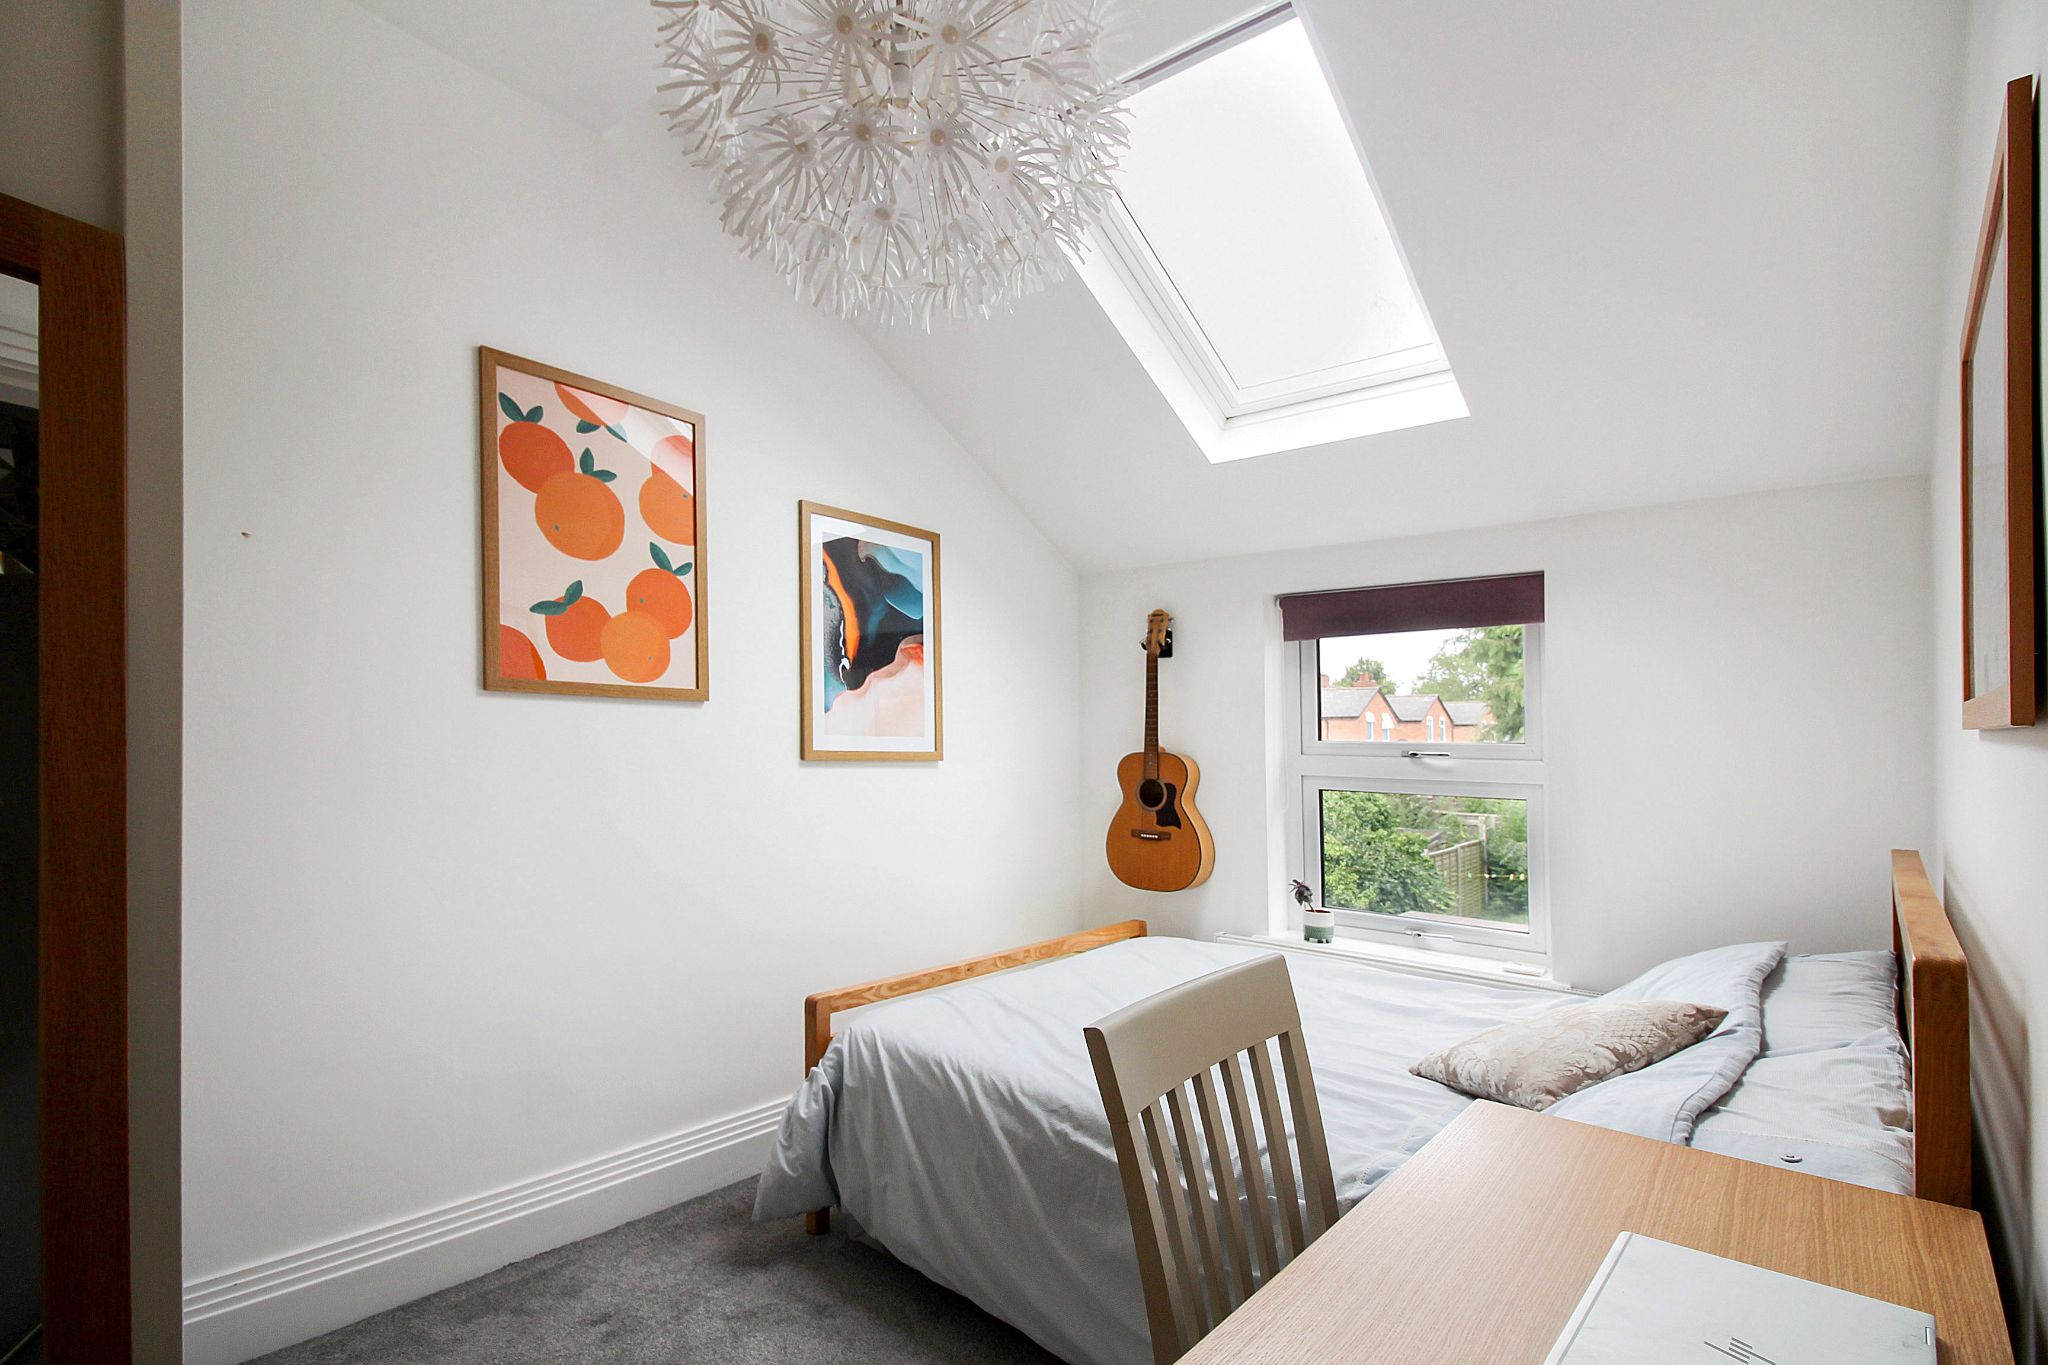 2 bedroom end terraced house For Sale in Solihull - Photograph 9.